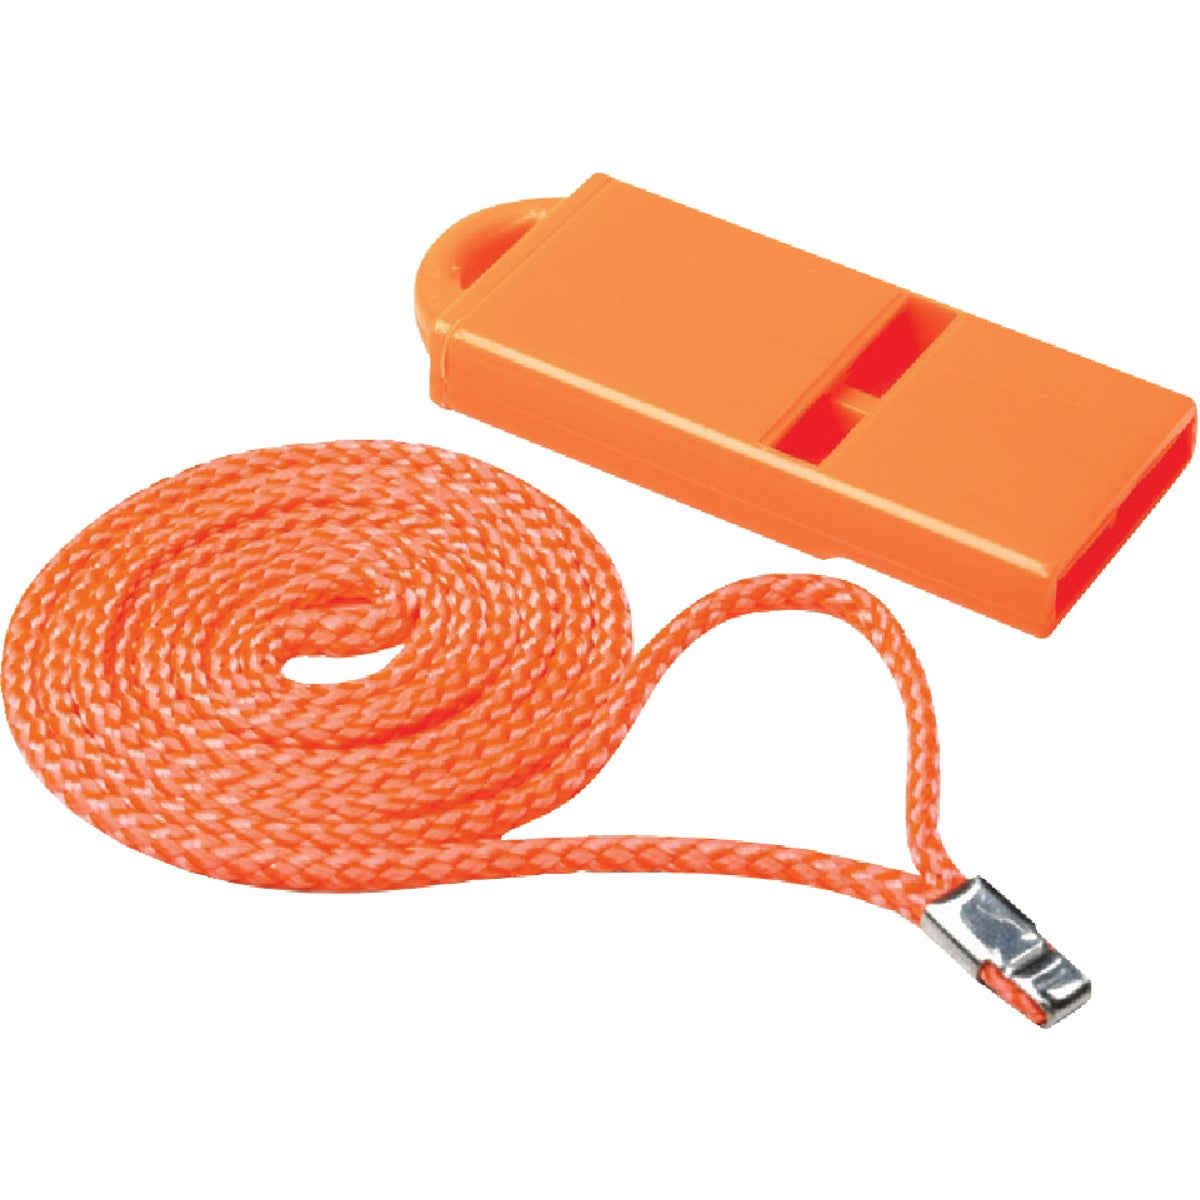 ORANGE PLASTIC WHISTLE - 46041 by Seachoice Prod